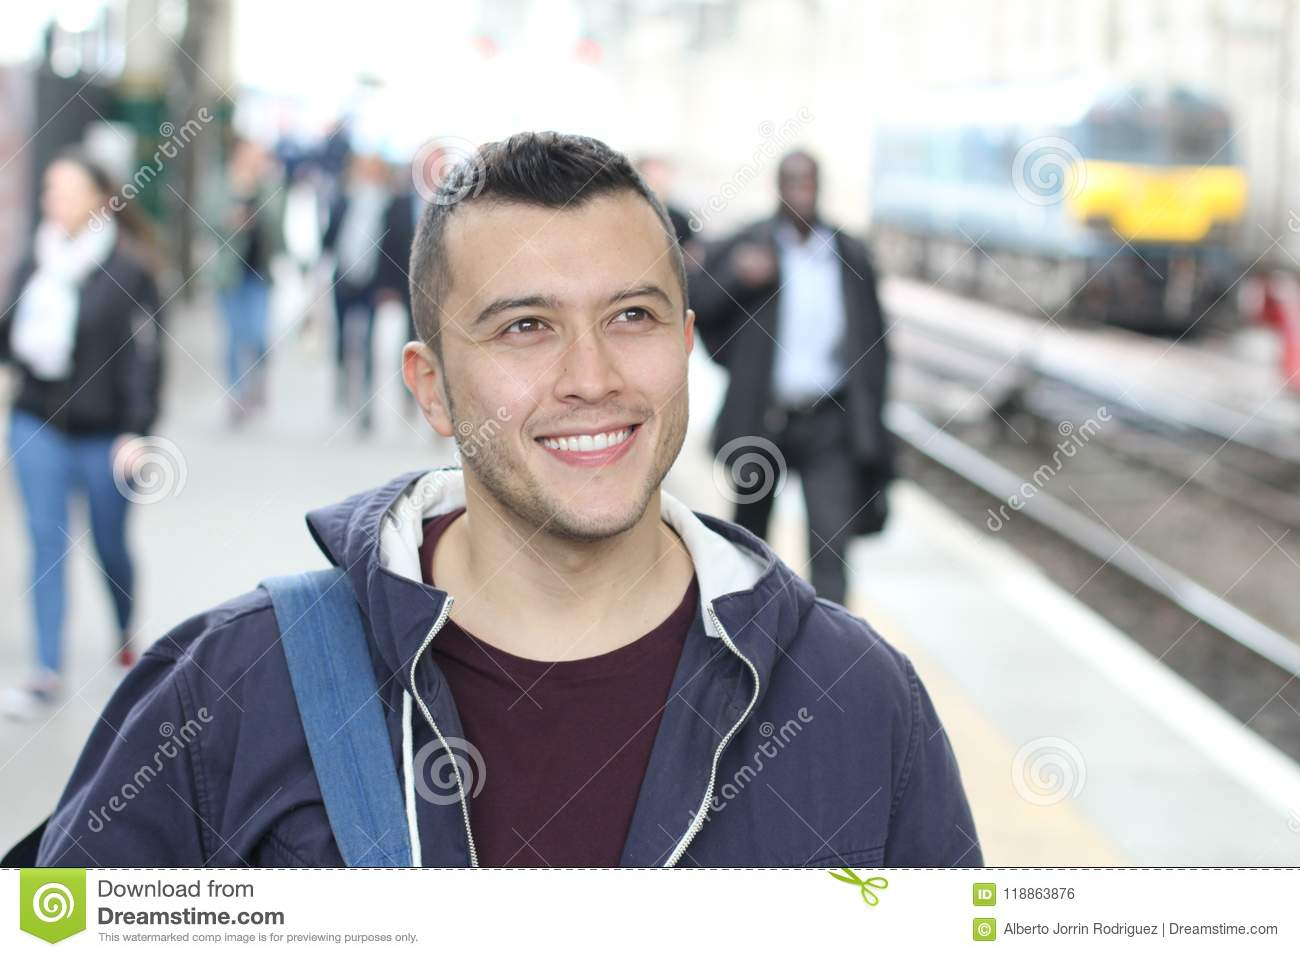 Ethnic commuter smiling in the crowd